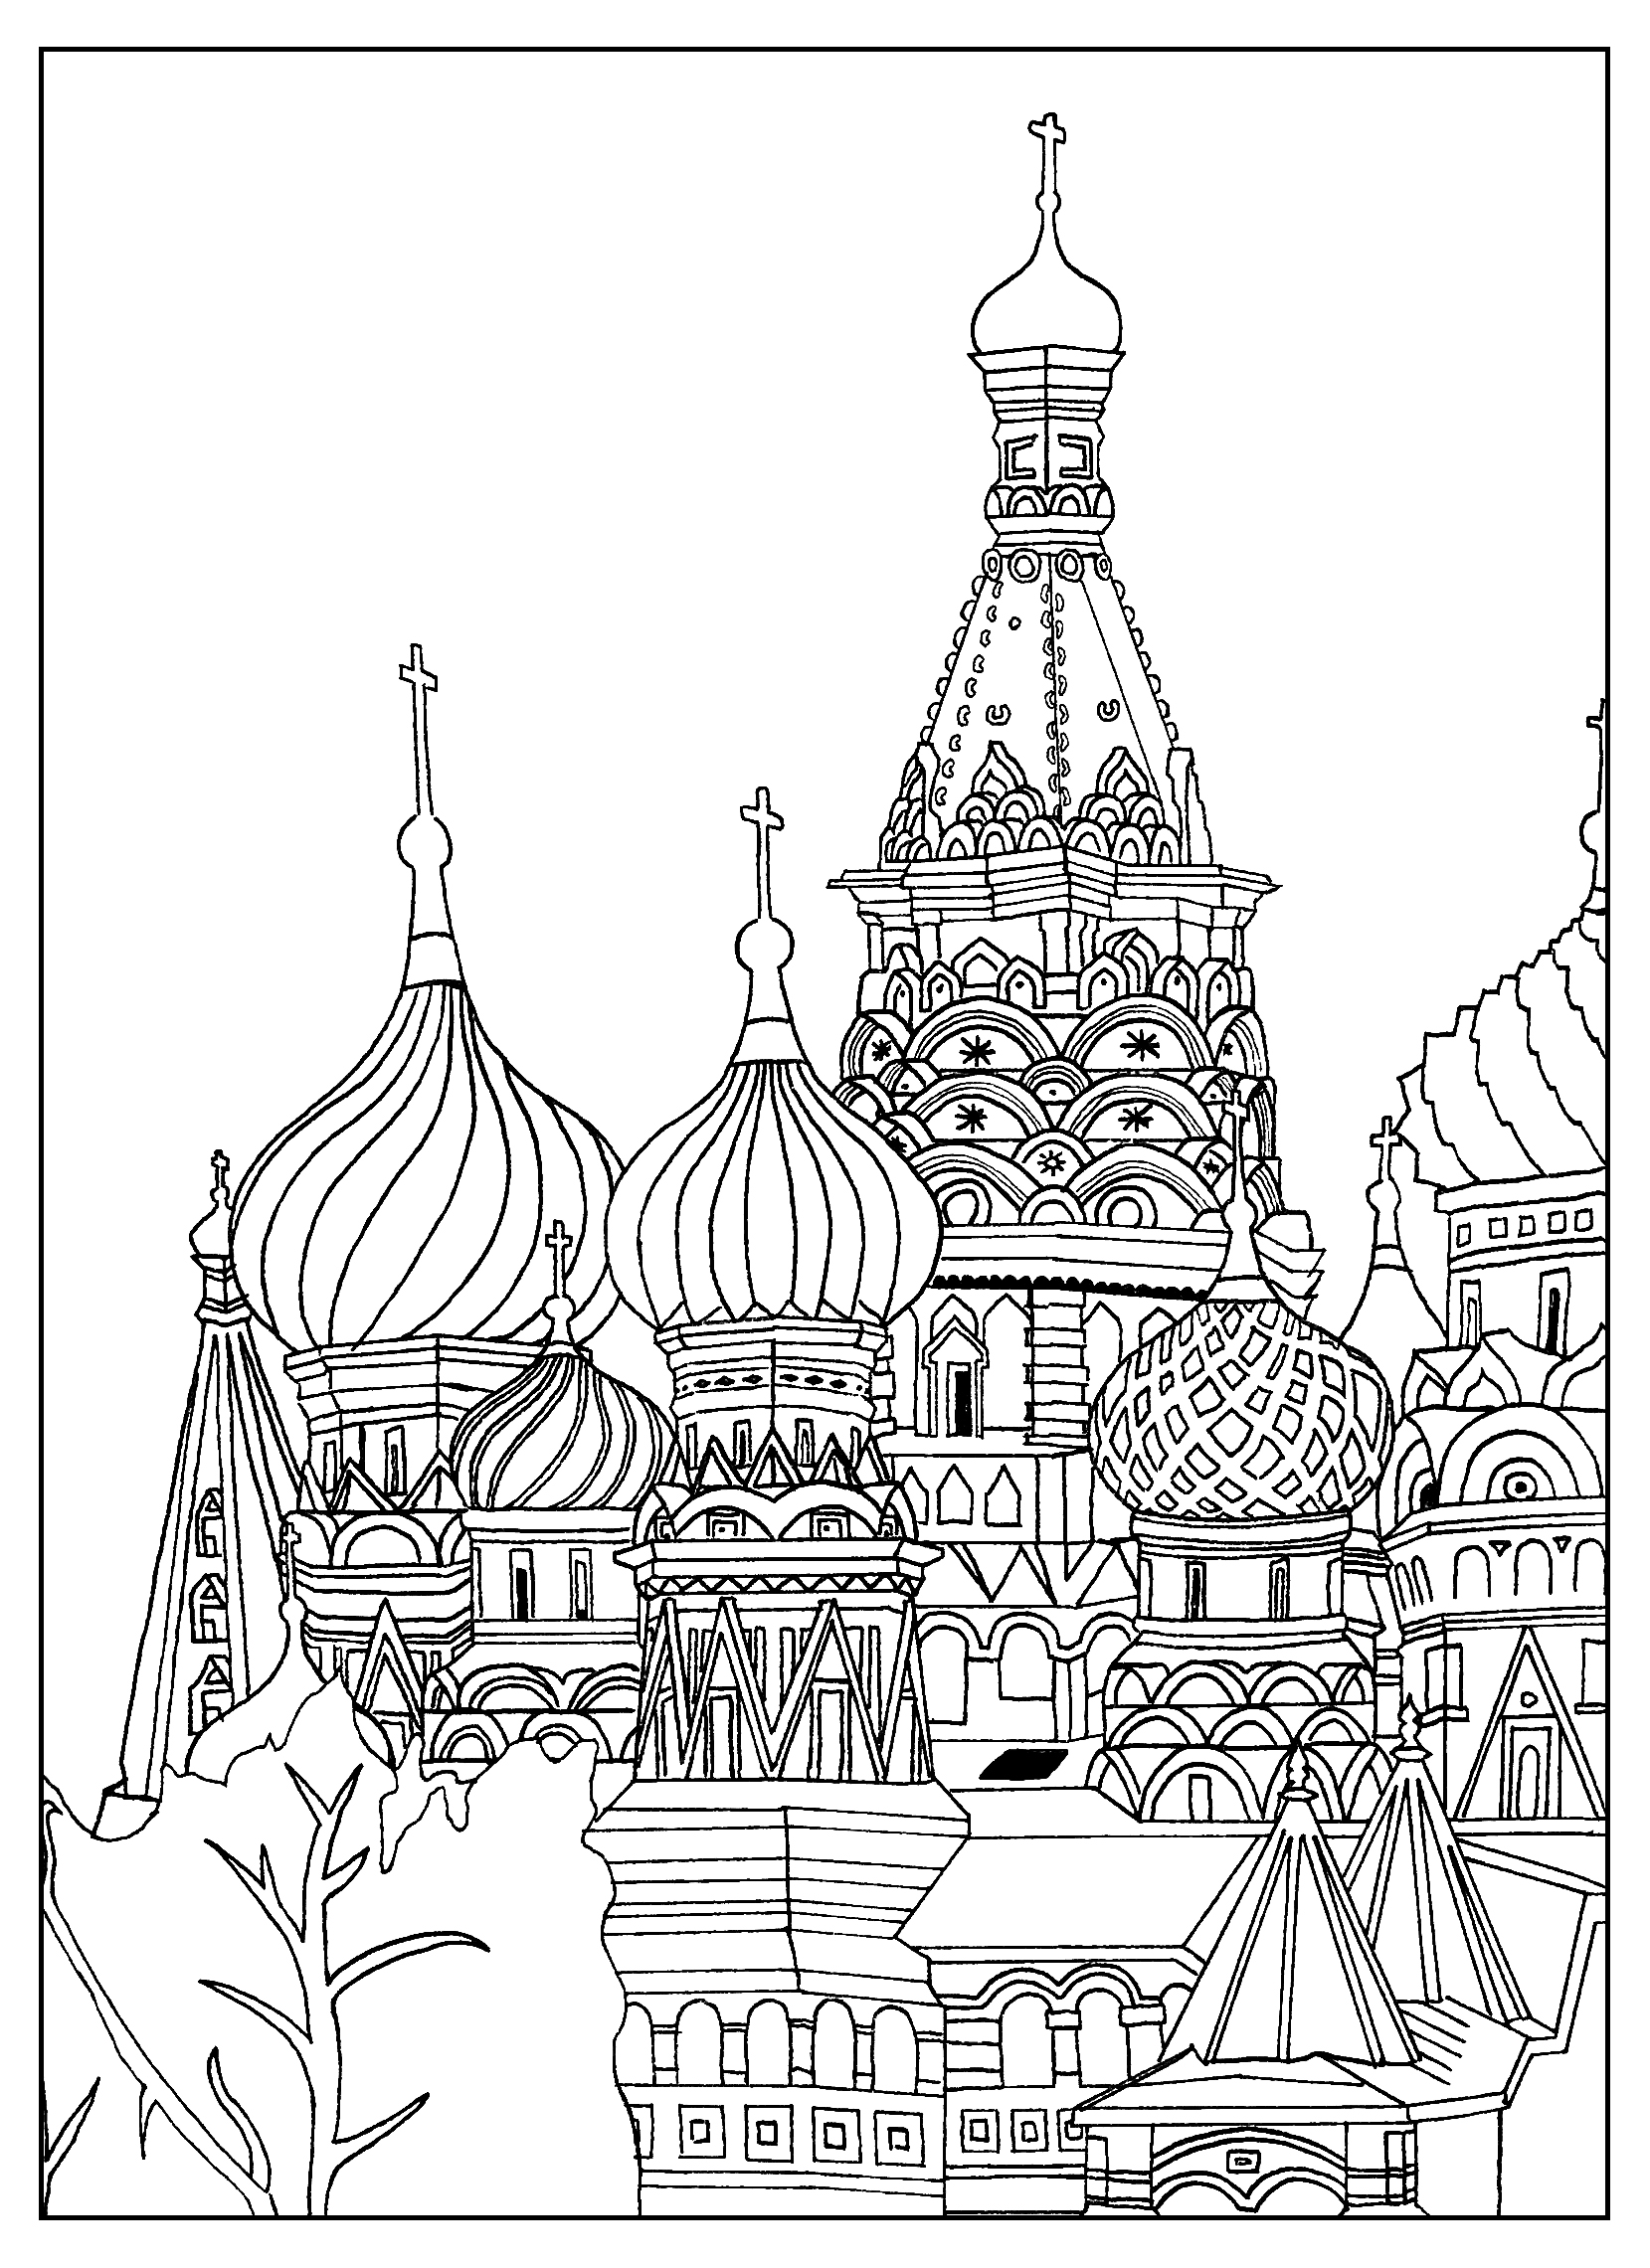 Download Place Coloring For Free